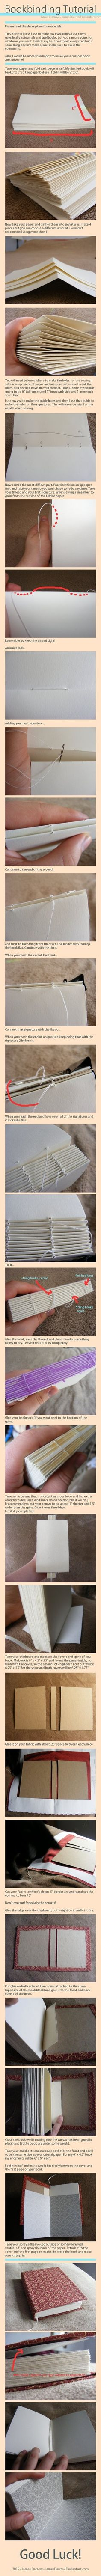 How to make your own bound book.